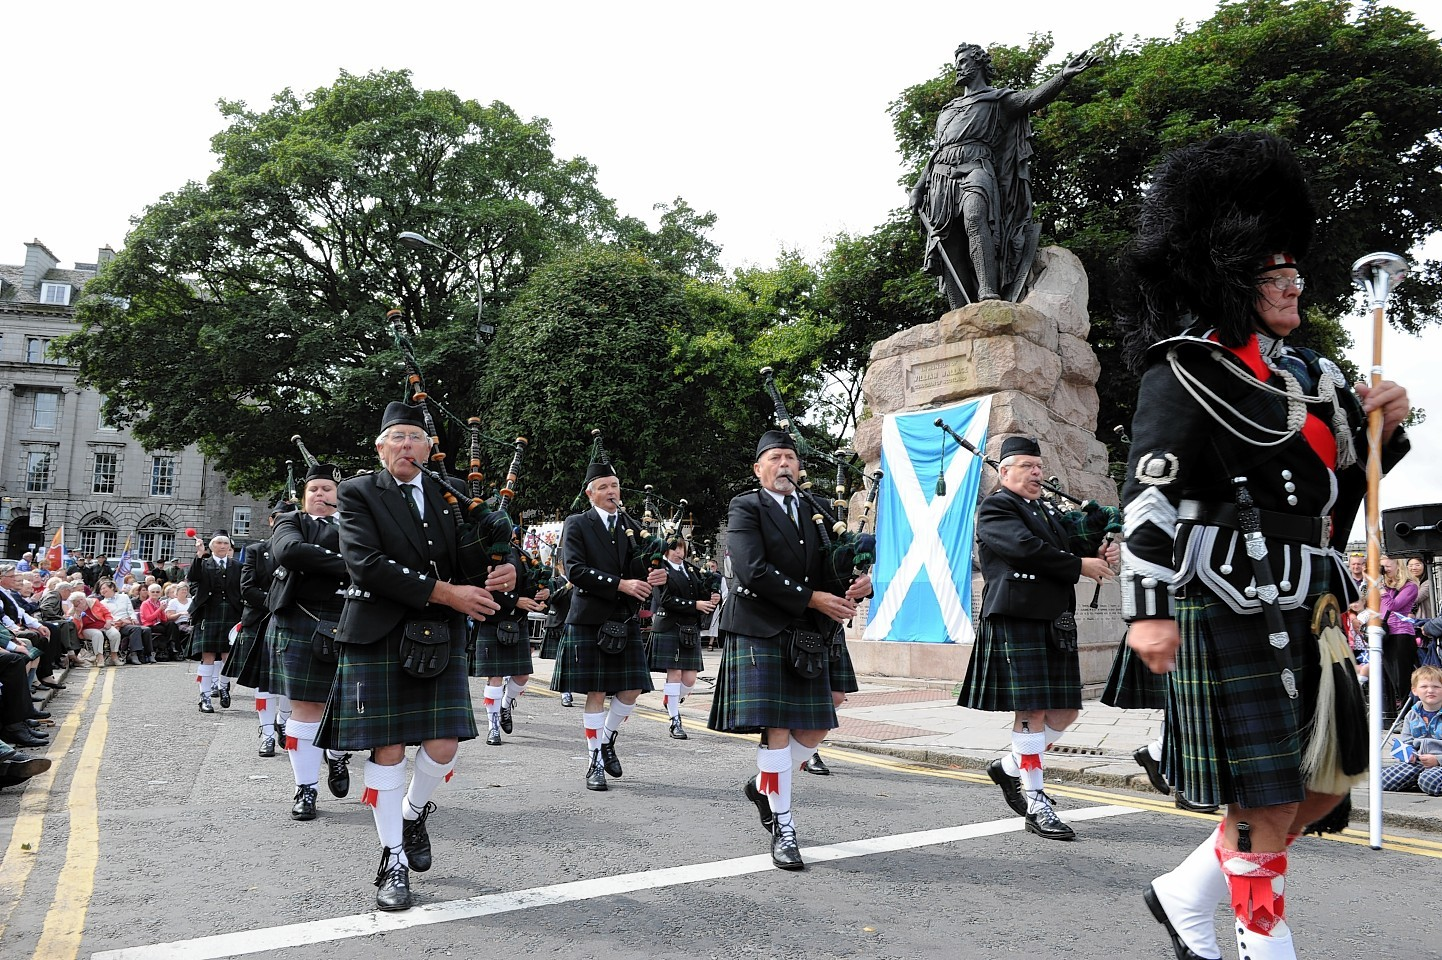 Kintore Pipe Band lead the commemorations